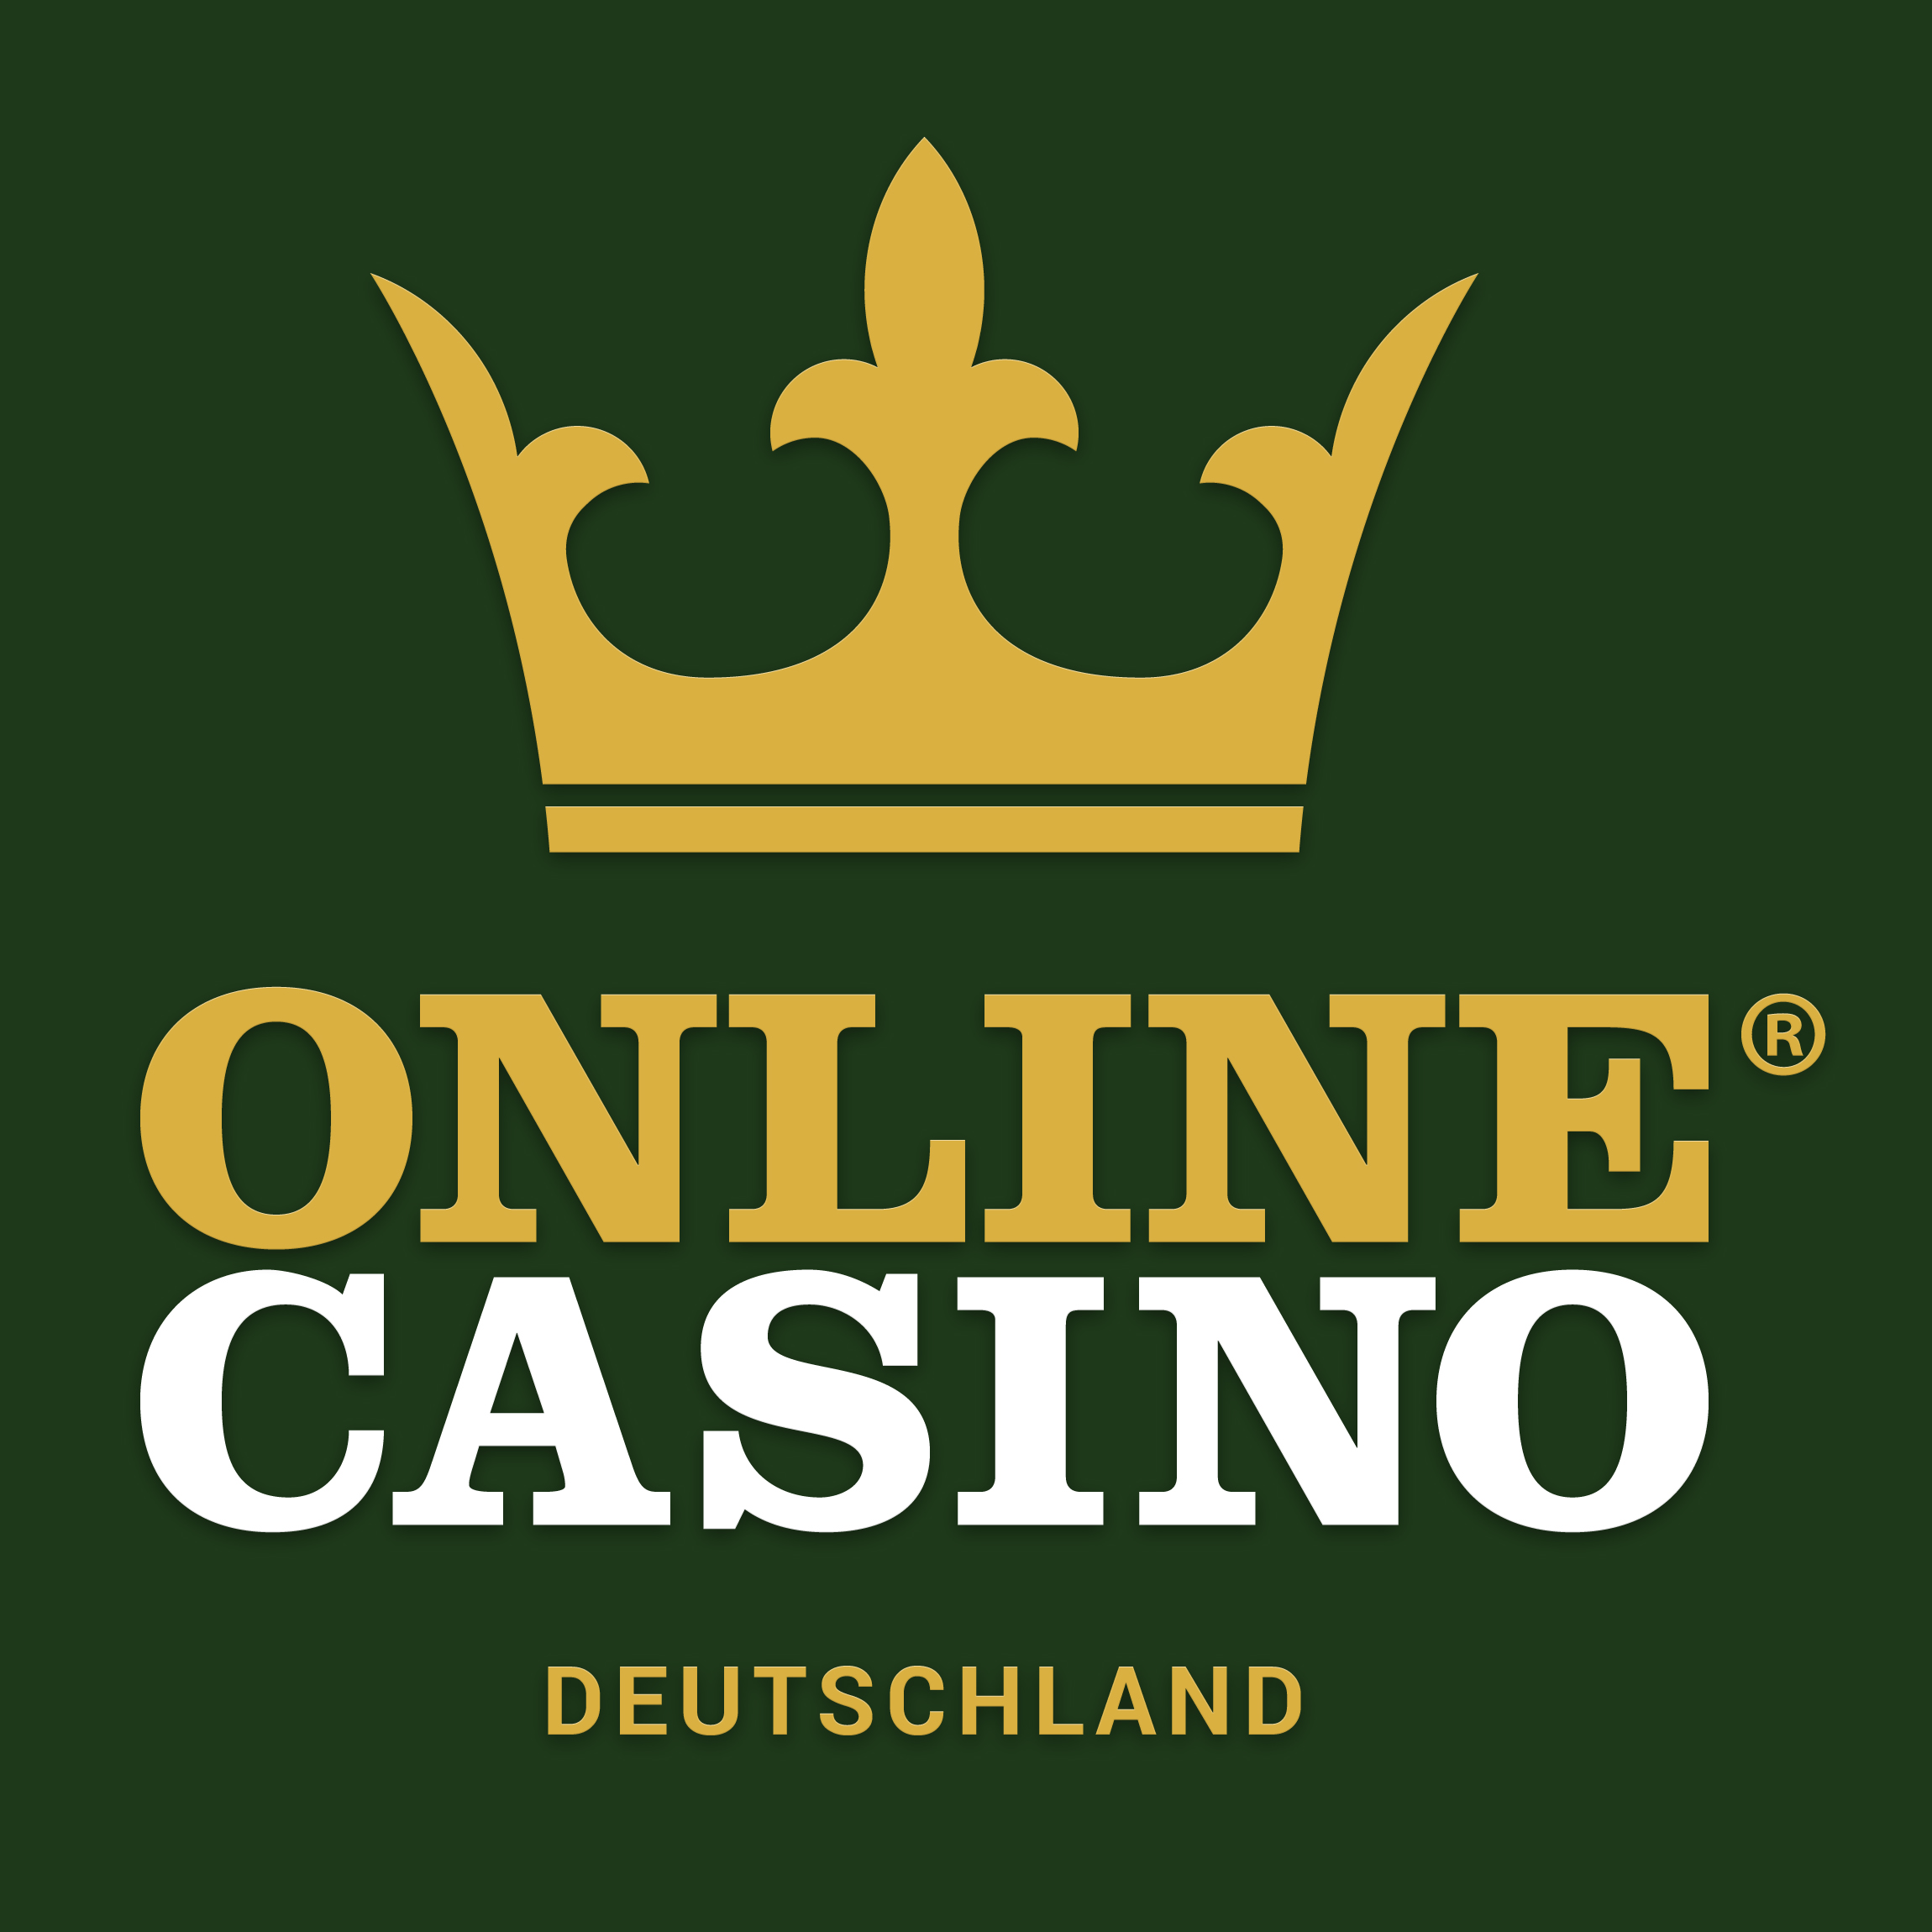 online casino illegal in deutschland